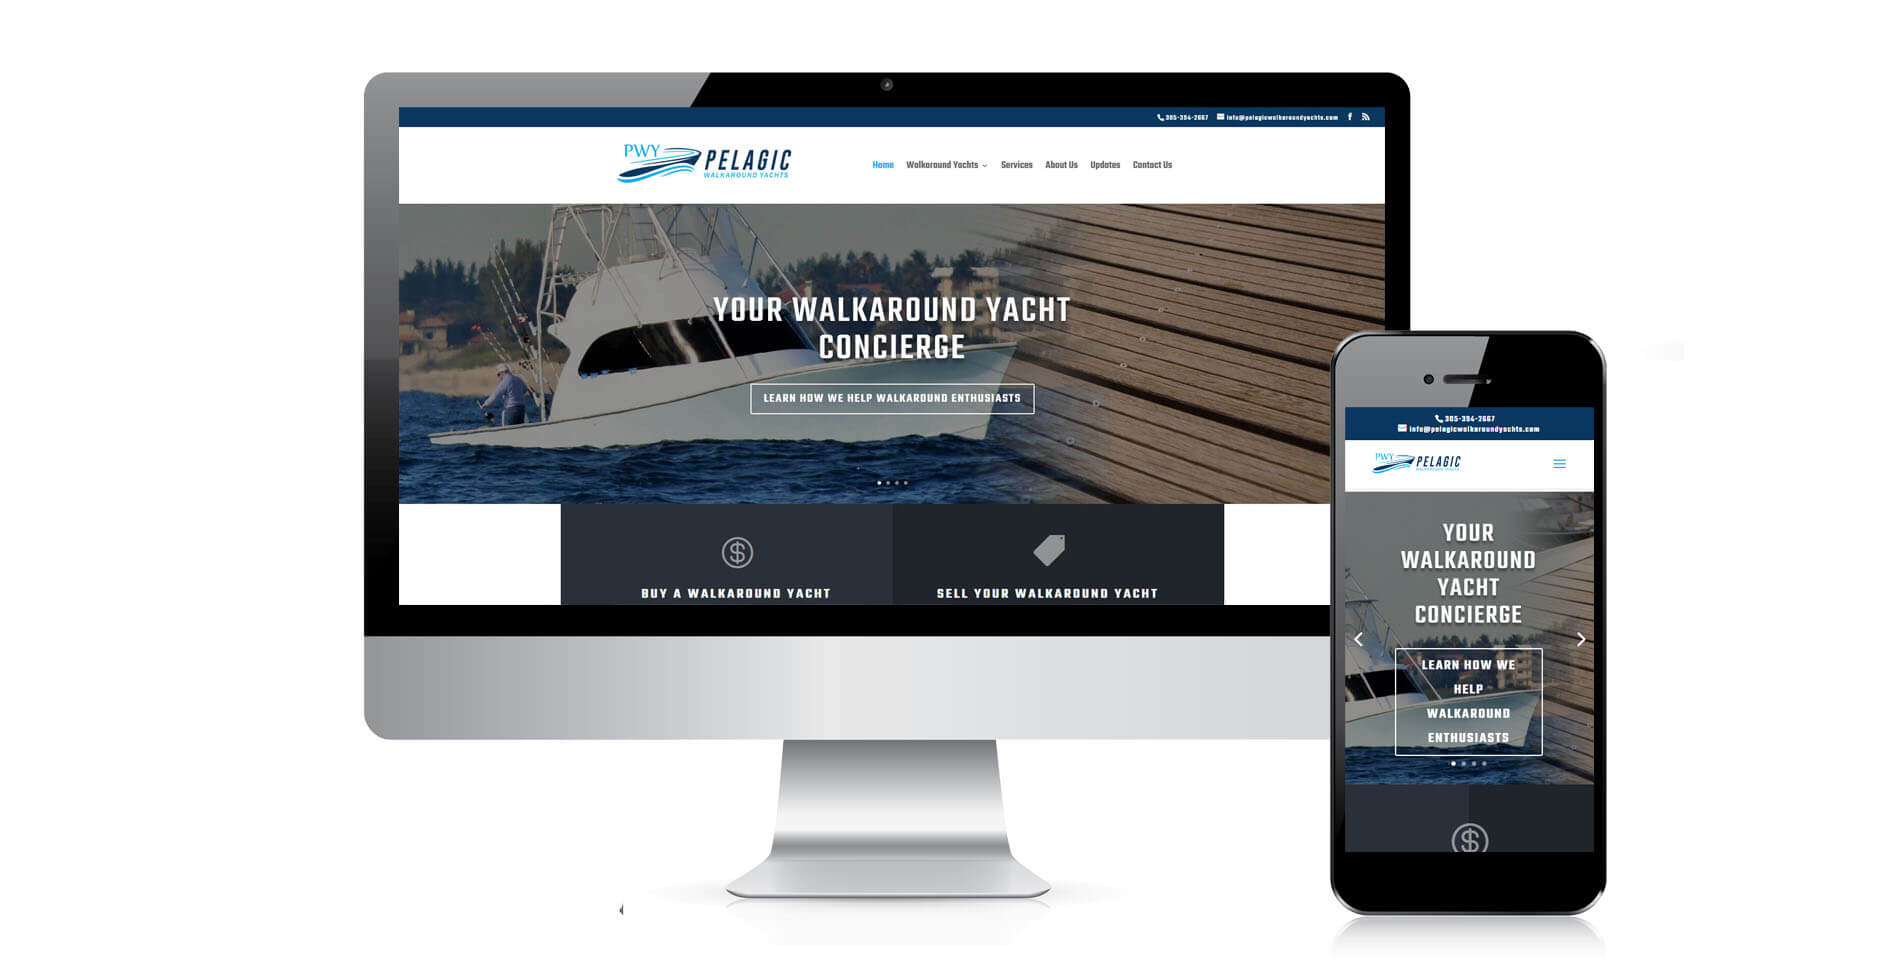 An image of the responsive design of Pelagic Walkaorund Yachts, website created by Not Fade Away Marketing